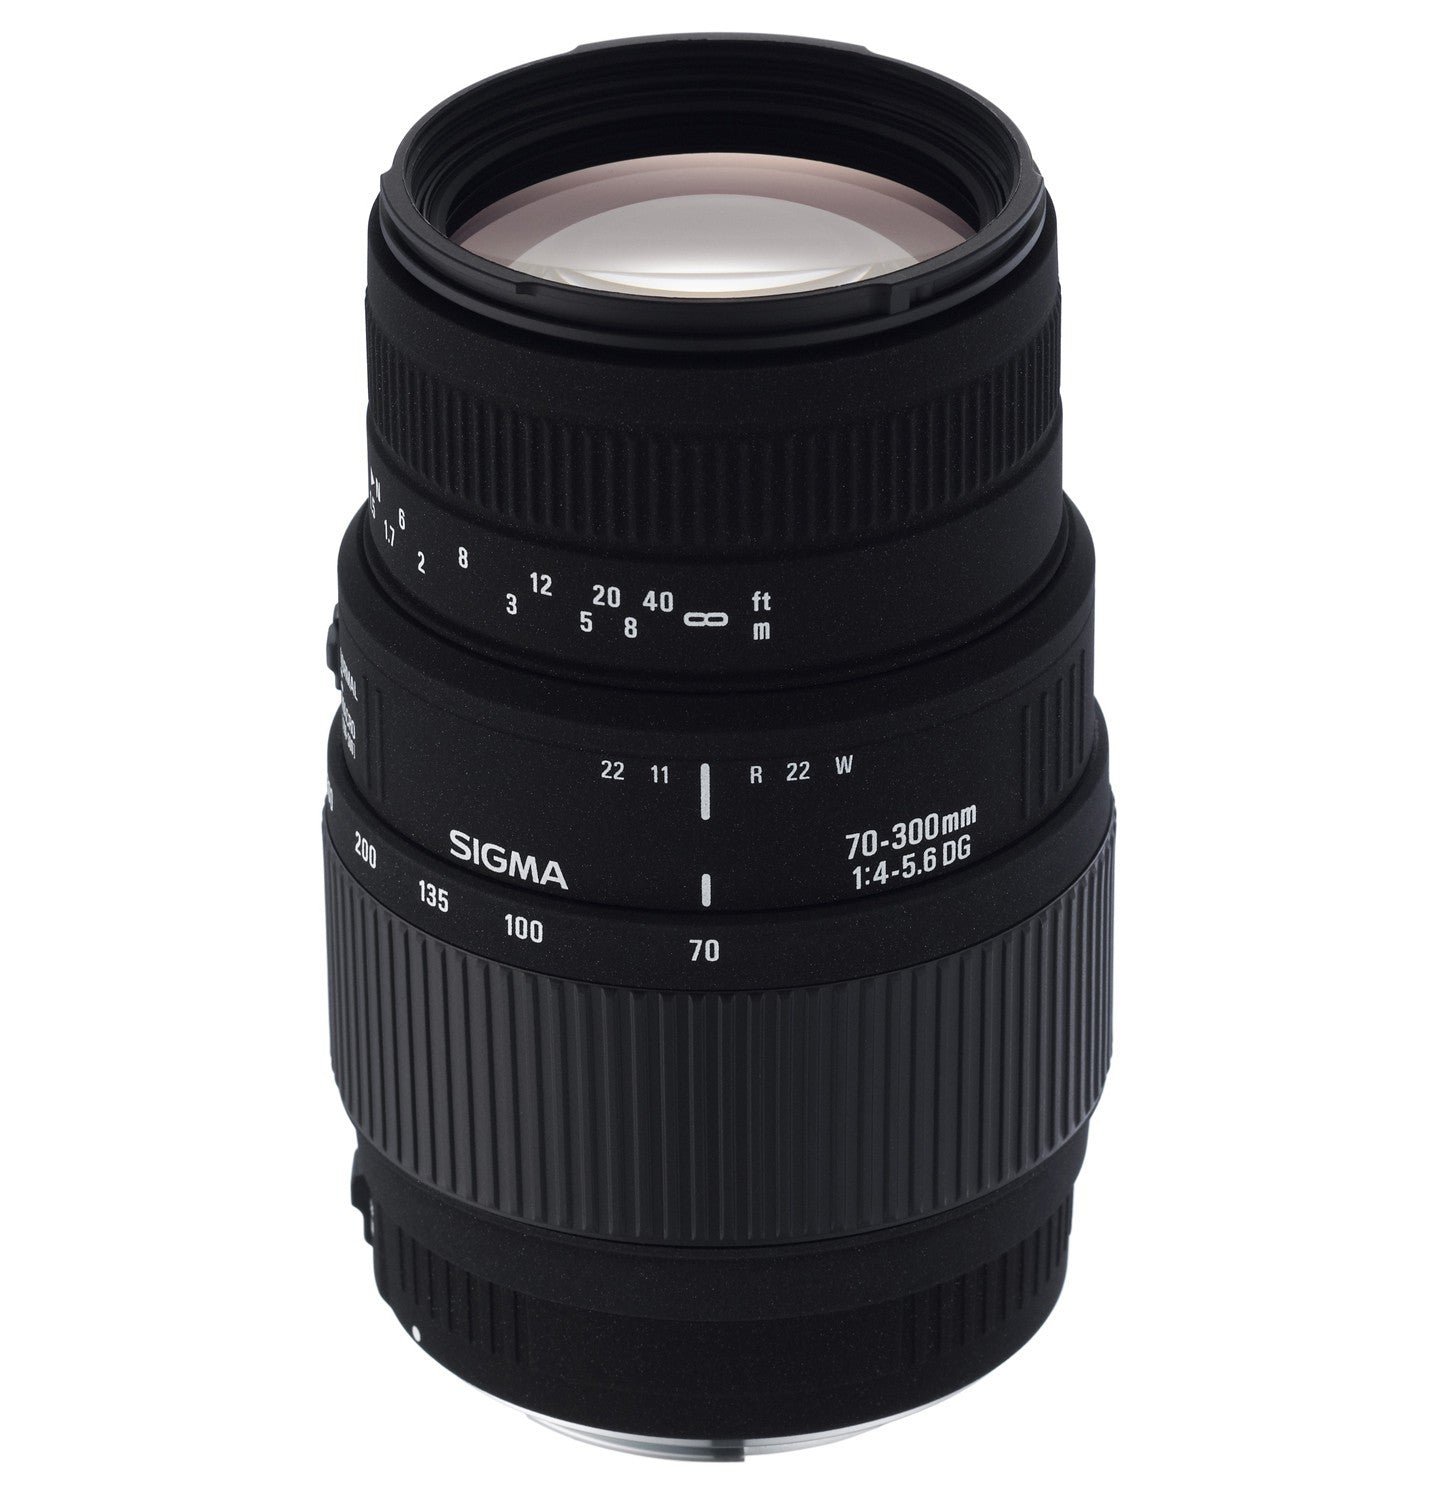 Sigma 70-300mm F4-5.6 DL-M DG (Canon)